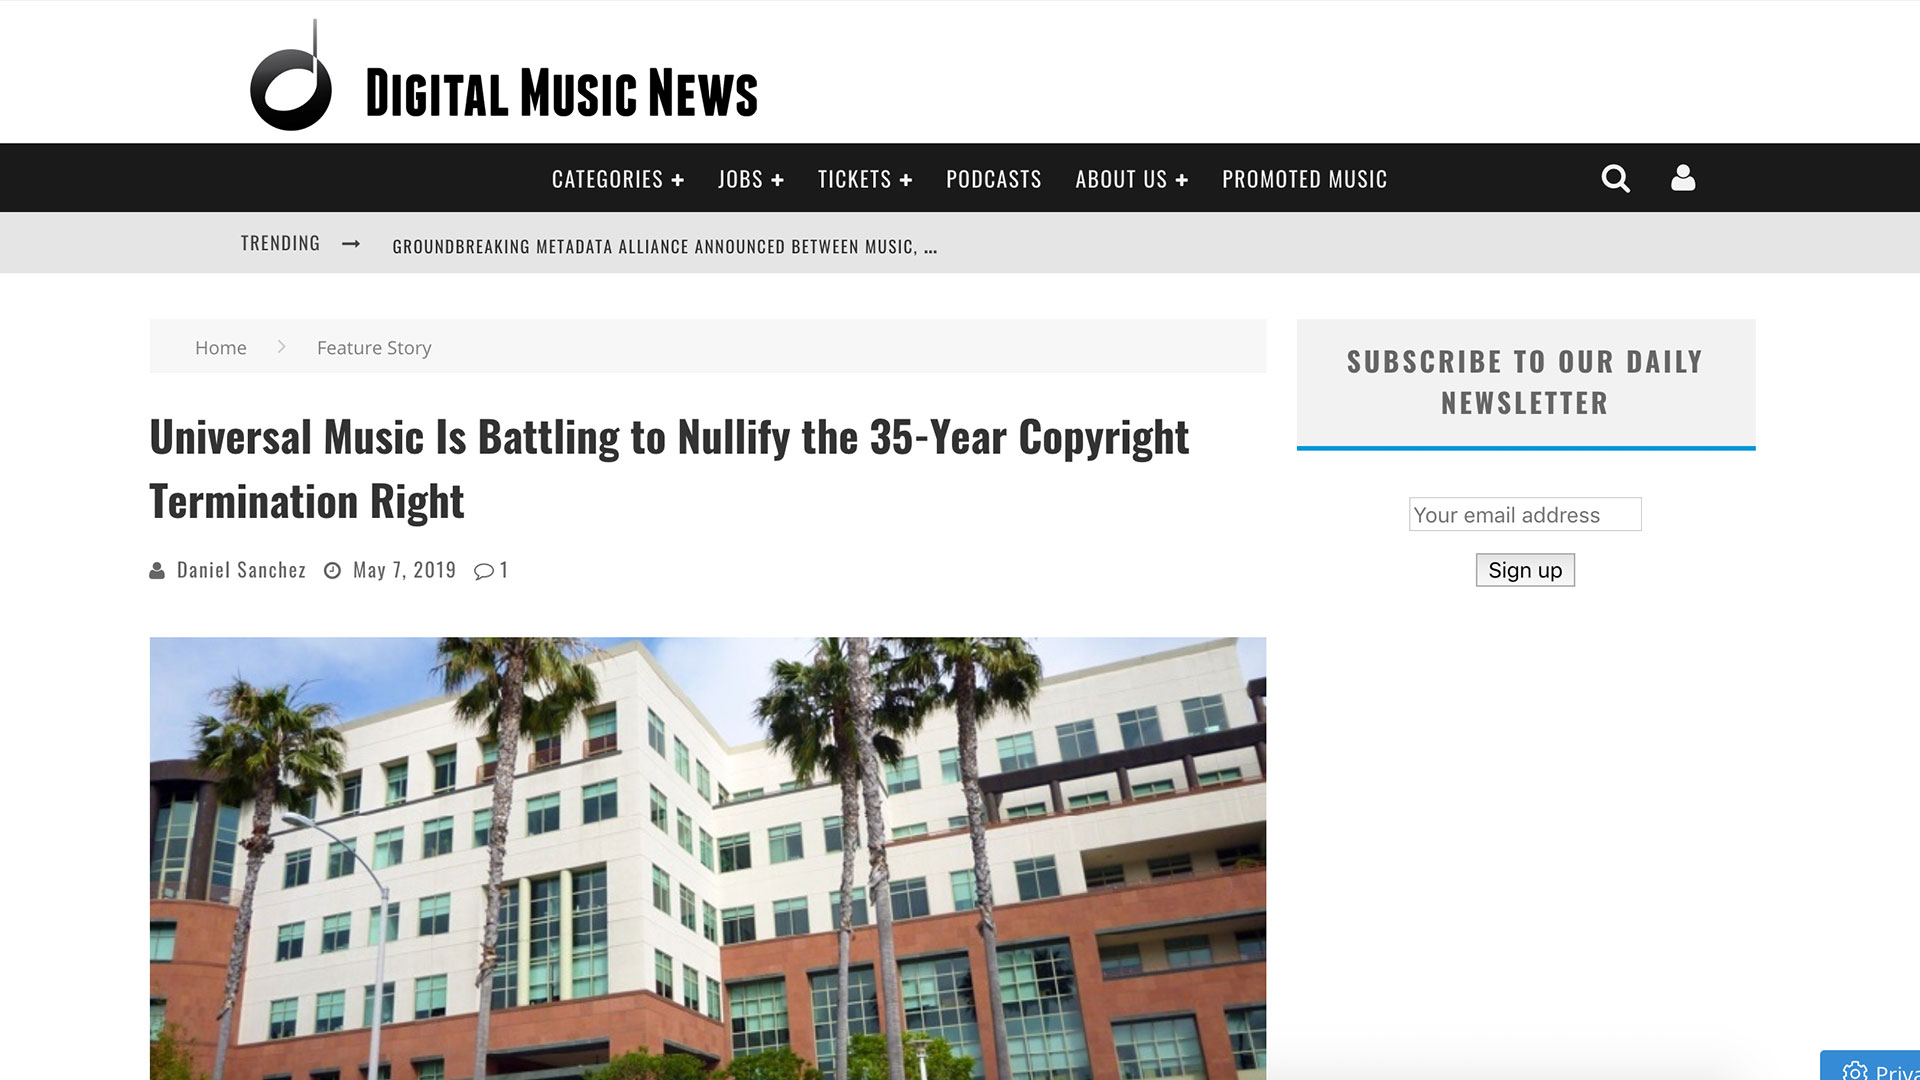 Fairness Rocks News Universal Music Is Battling to Nullify the 35-Year Copyright Termination Right